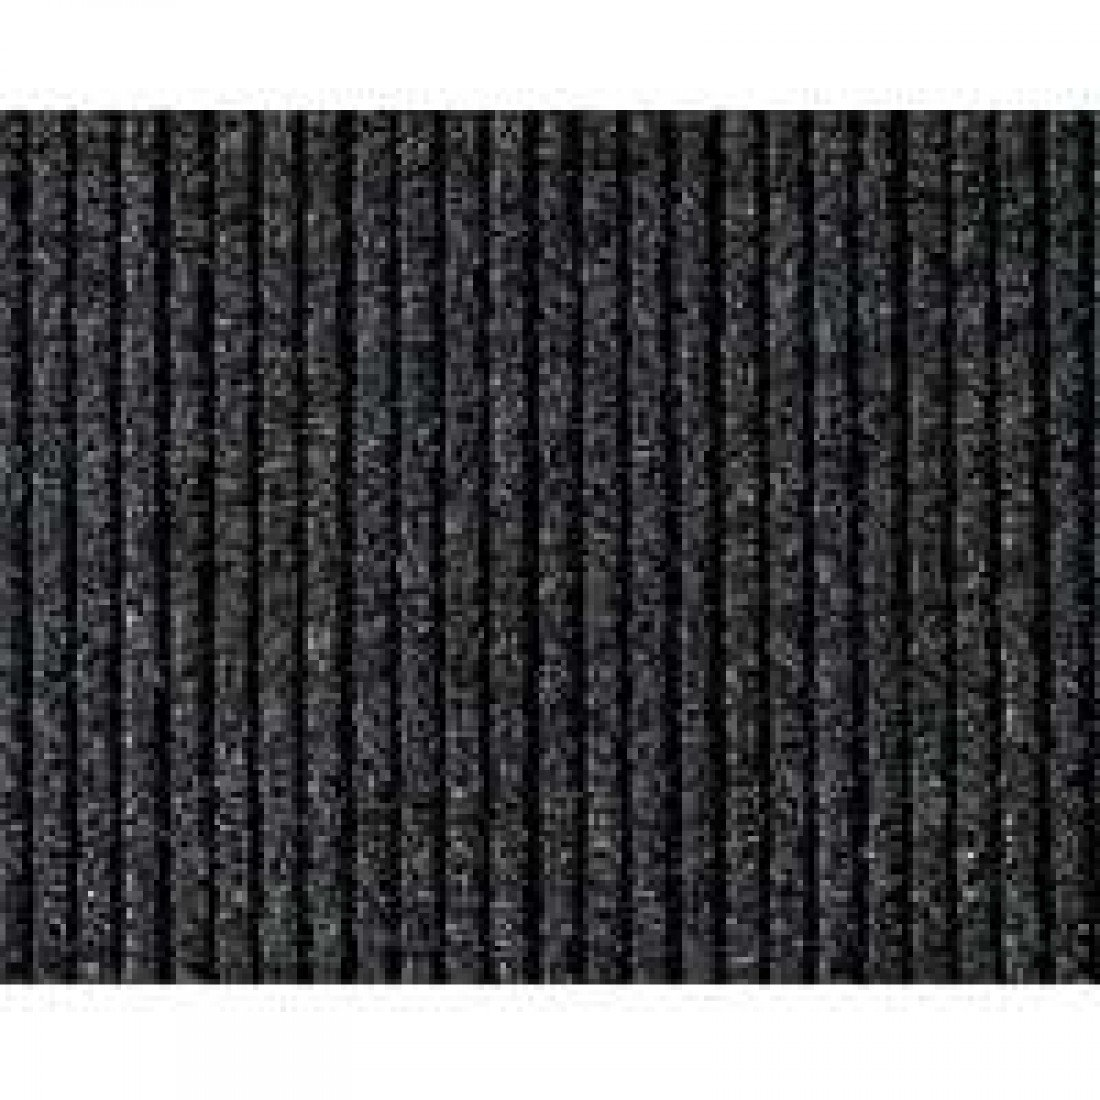 Multy Industries 36''x50' Concord Runner Charcoal 1000146 by Multy